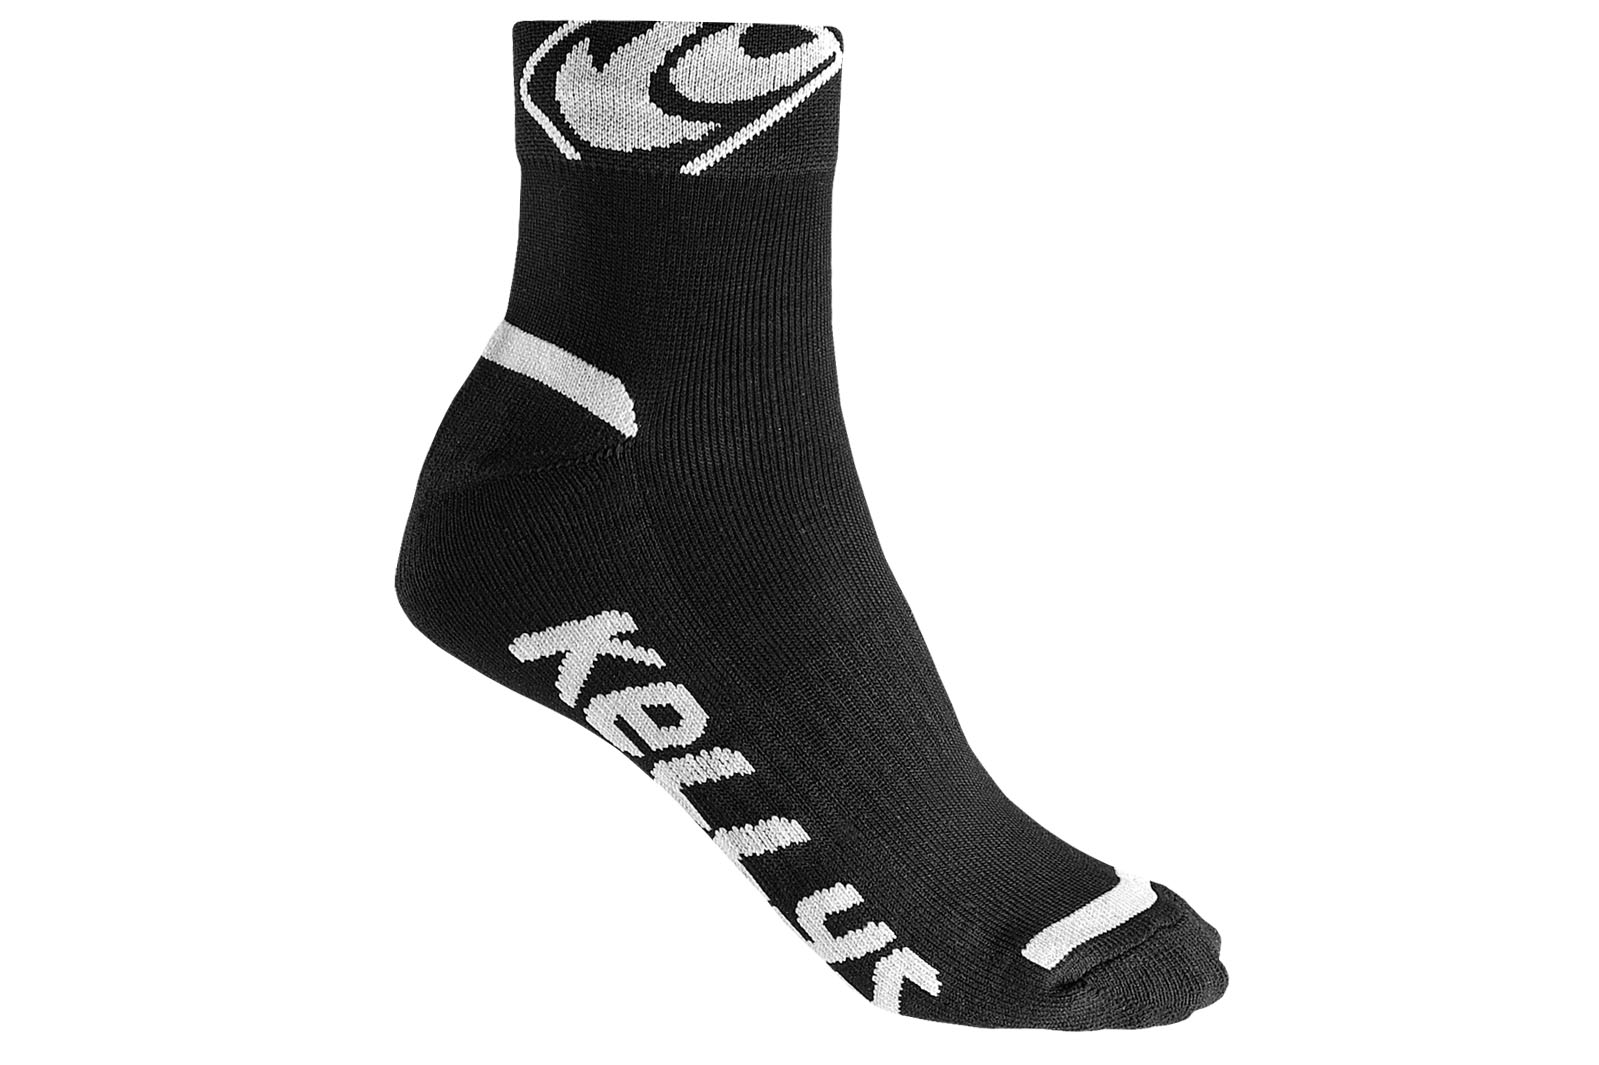 Socken KELLYS TOUR black-white 38-42 - Socken KELLYS TOUR black-white 38-42